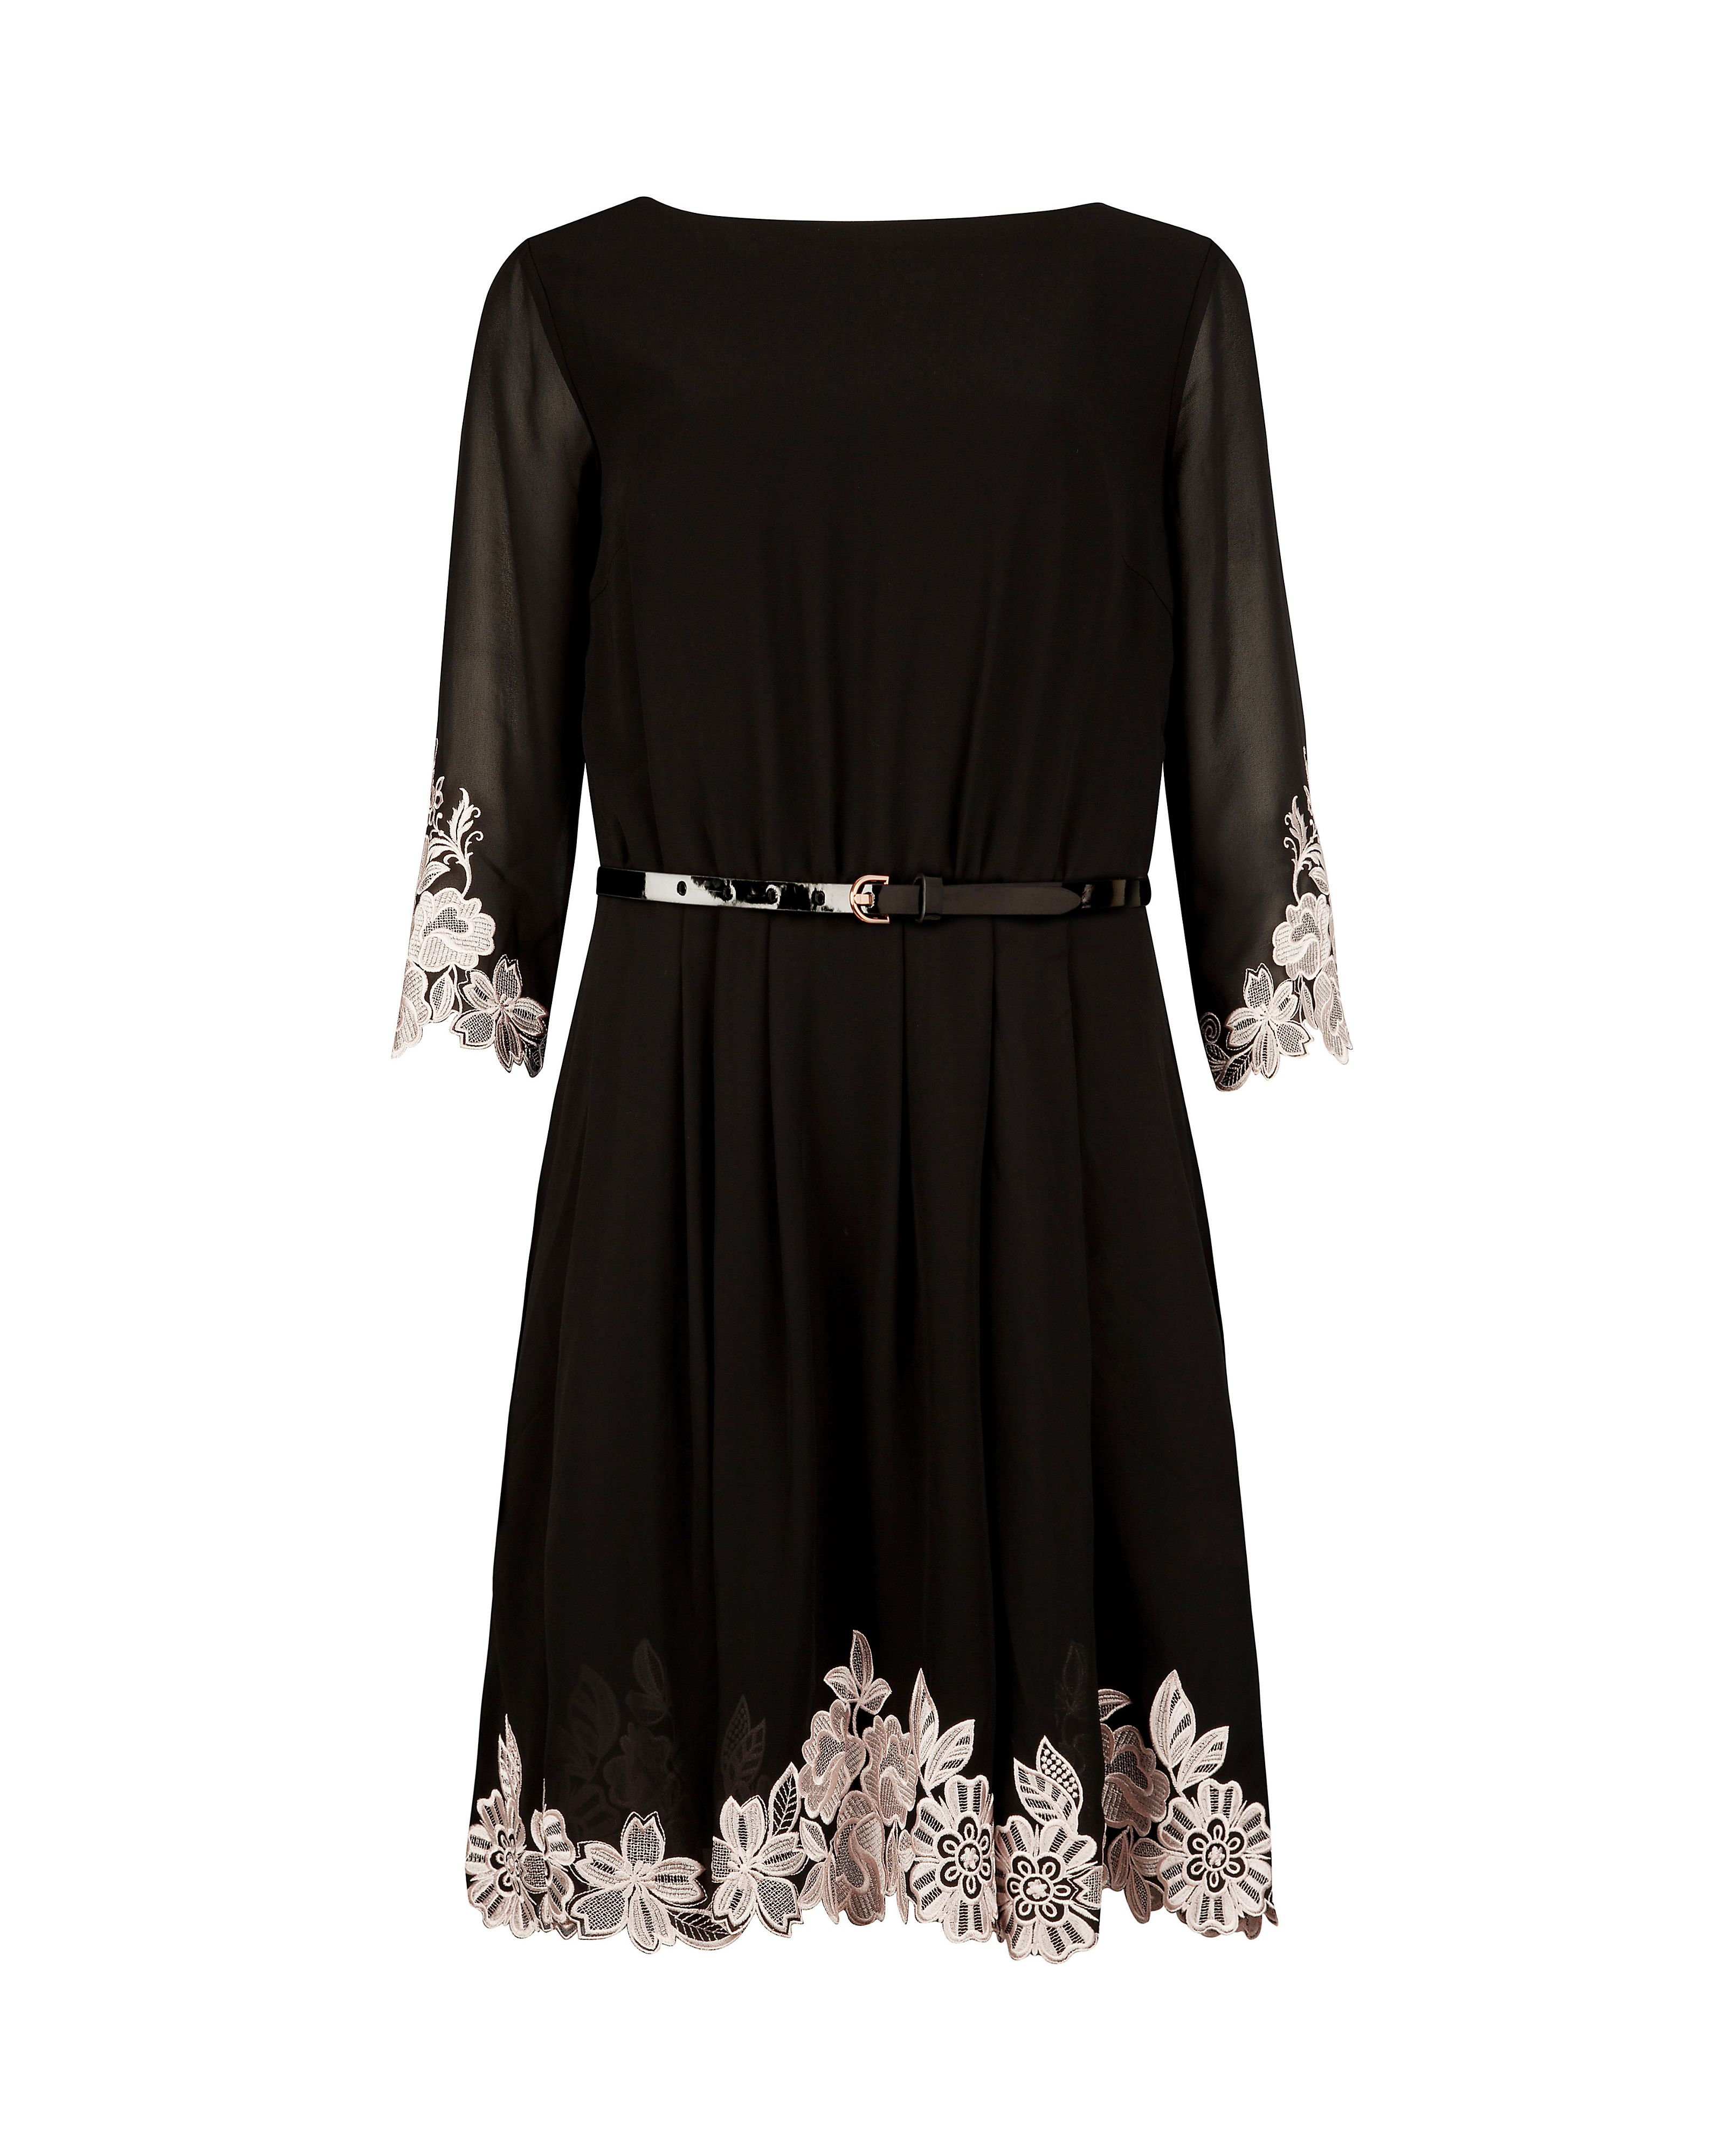 Feay embroidered dress